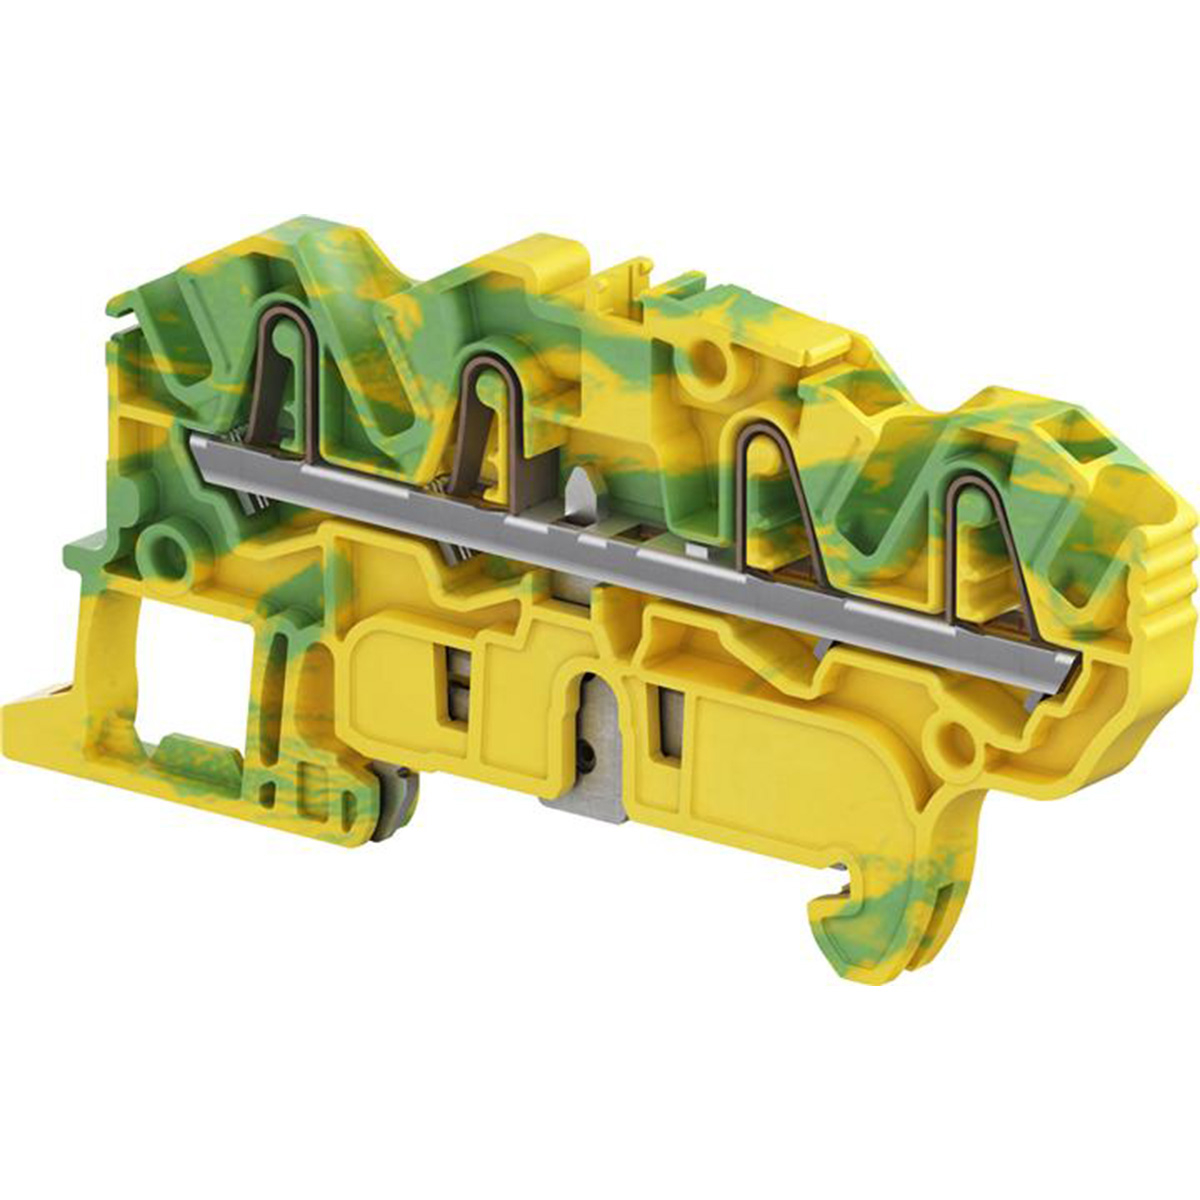 1SNK705152R0000 ABB ZK2.5-PE-4P 5MM 4POINT SPRING GROUND TO RAIL GREEN/YELLOW BLOCK 12AWG 600V